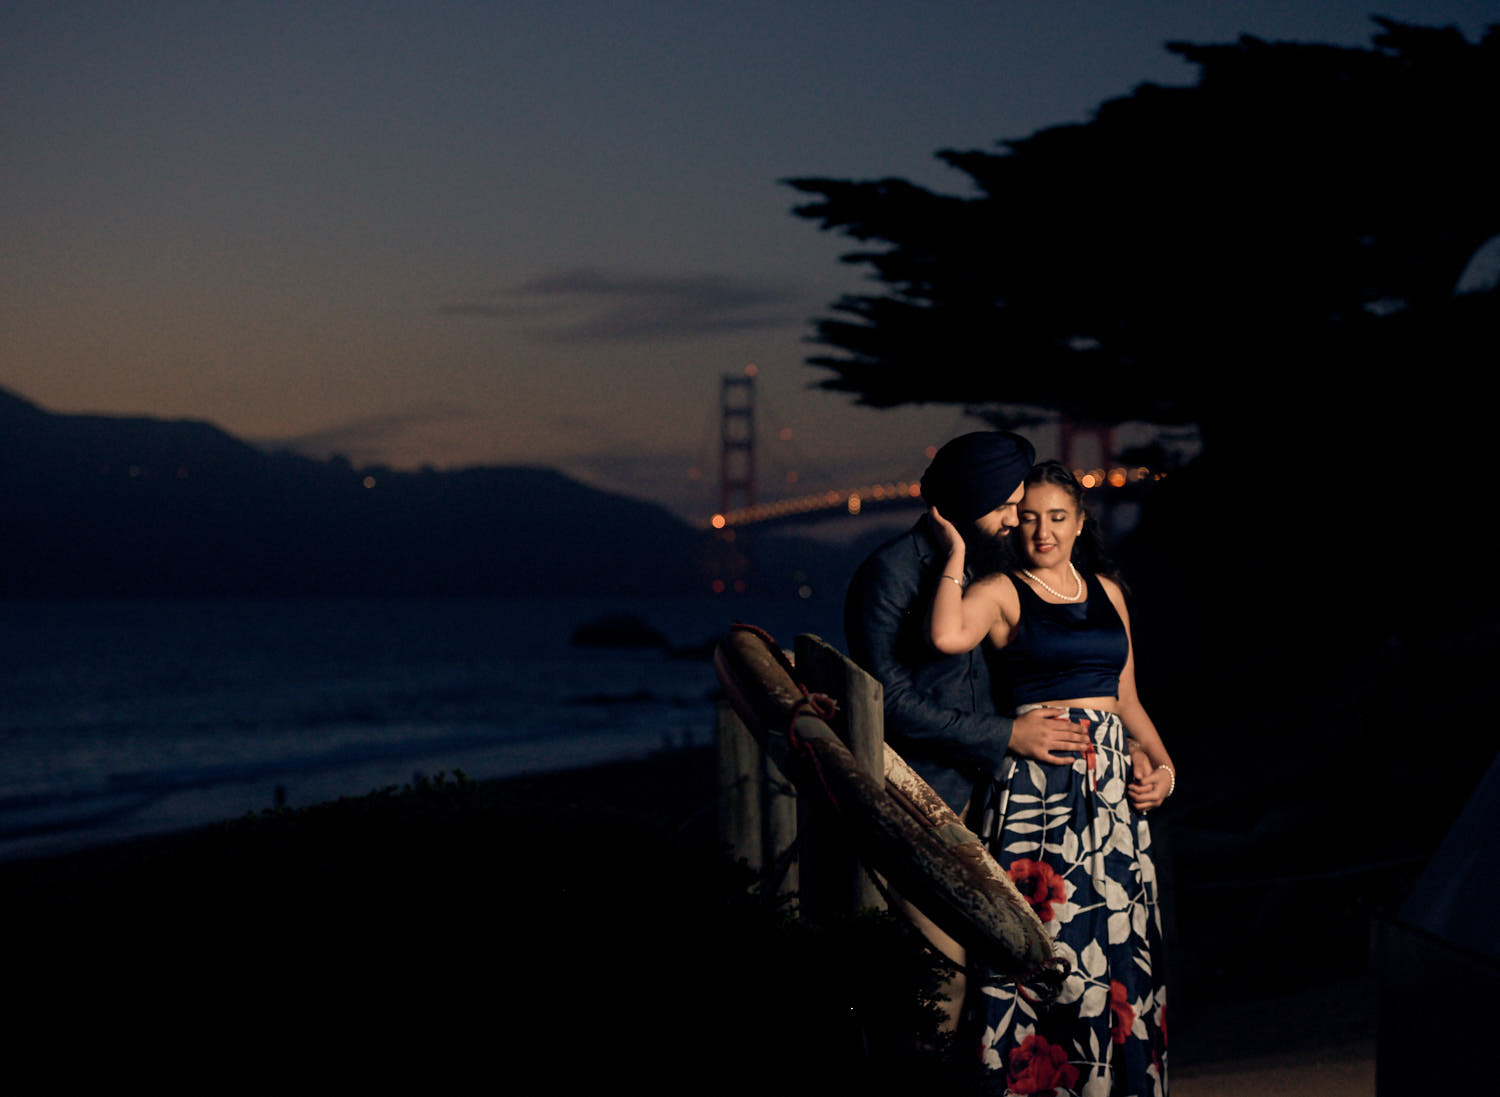 bakers-beach-engagement-session-photography-san-francisco 53.jpg